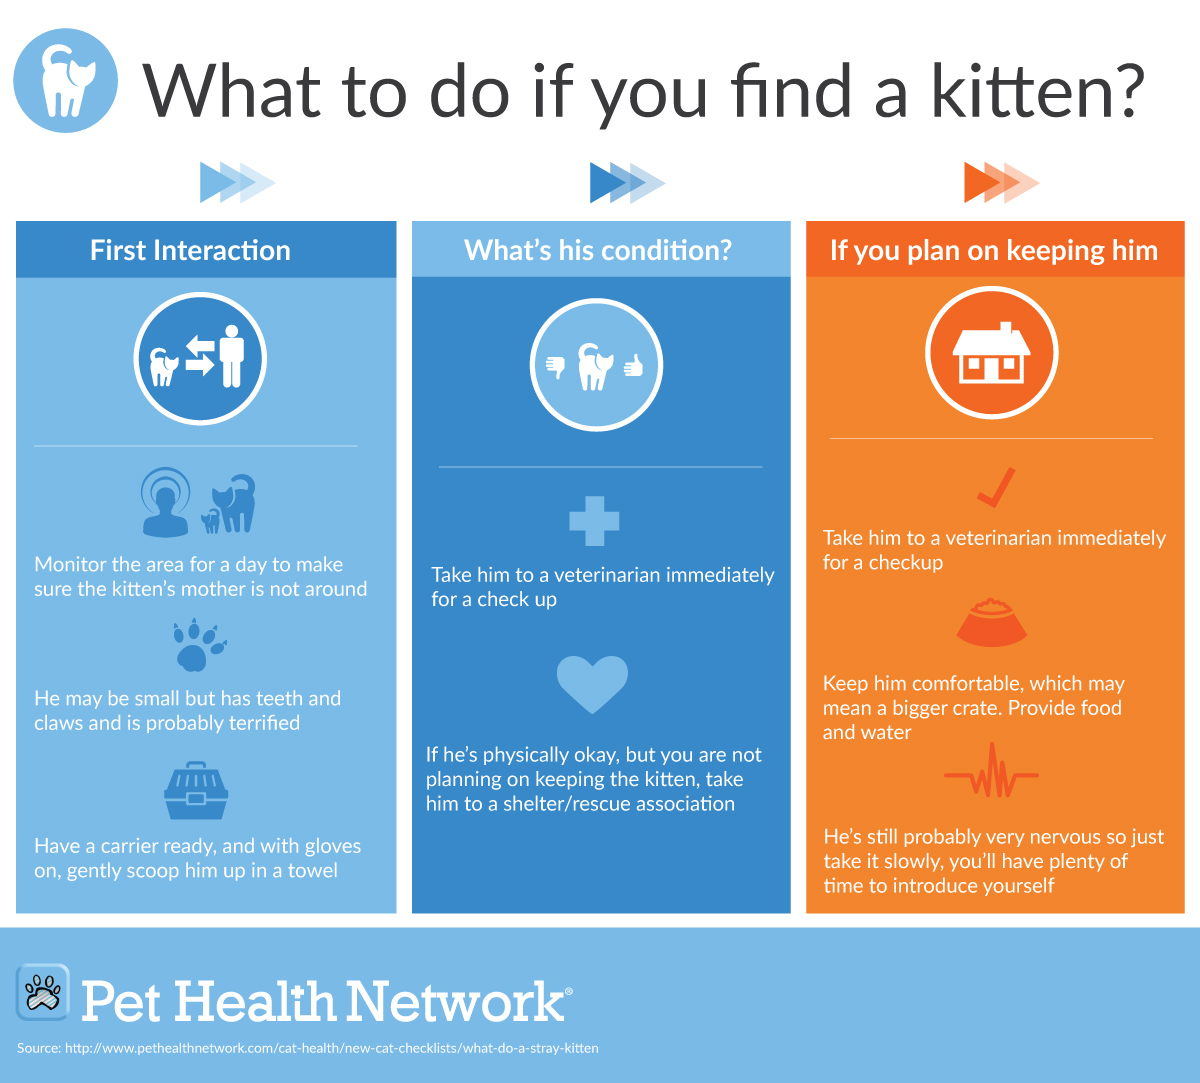 What To Do If You Find A Kitten?